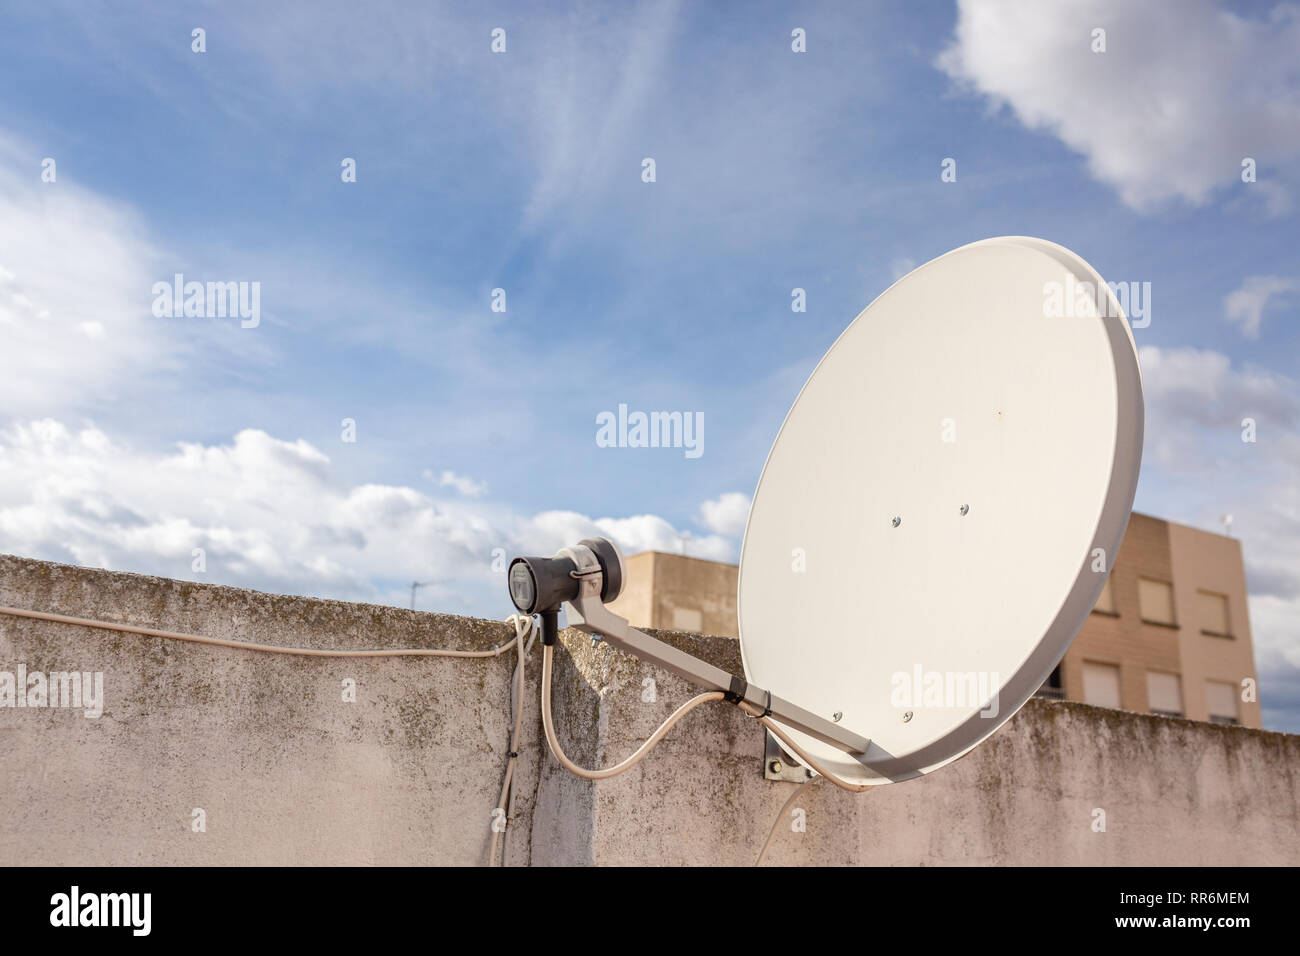 Old satellite dish on apartament building in Spain. Sunny nice day. - Stock Image